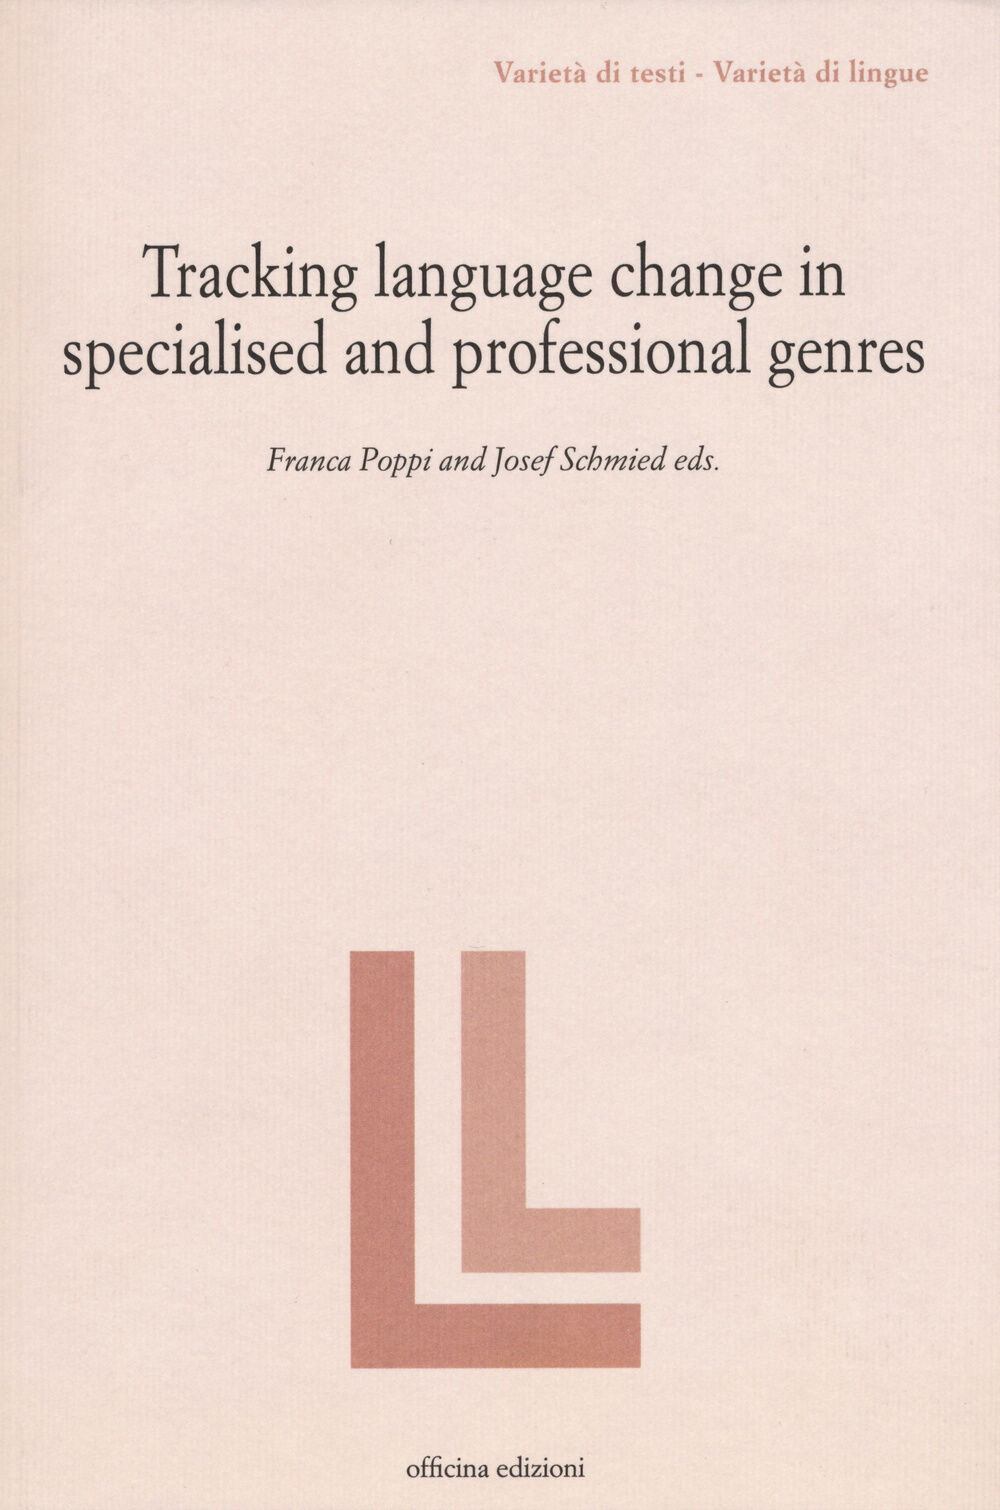 Tracking language change in specialized and professional genres